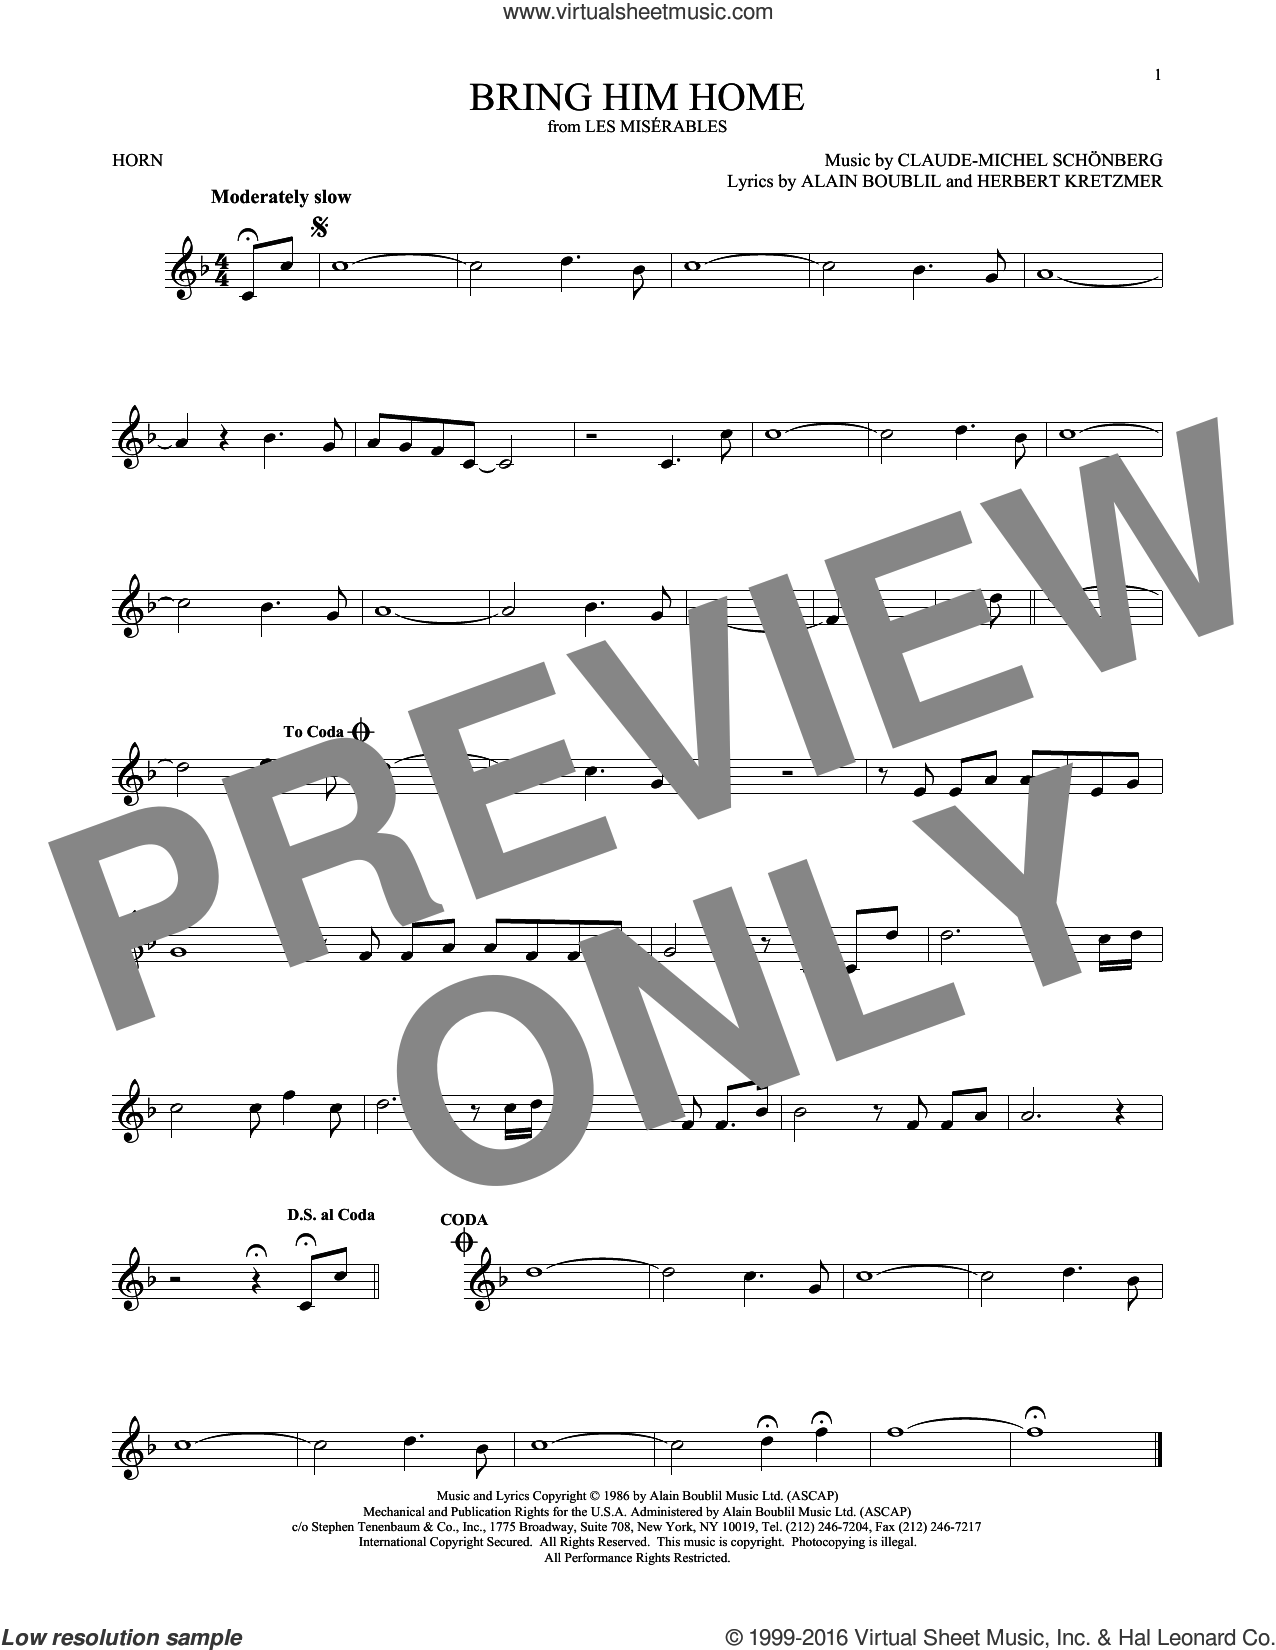 Bring Him Home sheet music for horn solo by Alain Boublil, Claude-Michel Schonberg and Herbert Kretzmer. Score Image Preview.